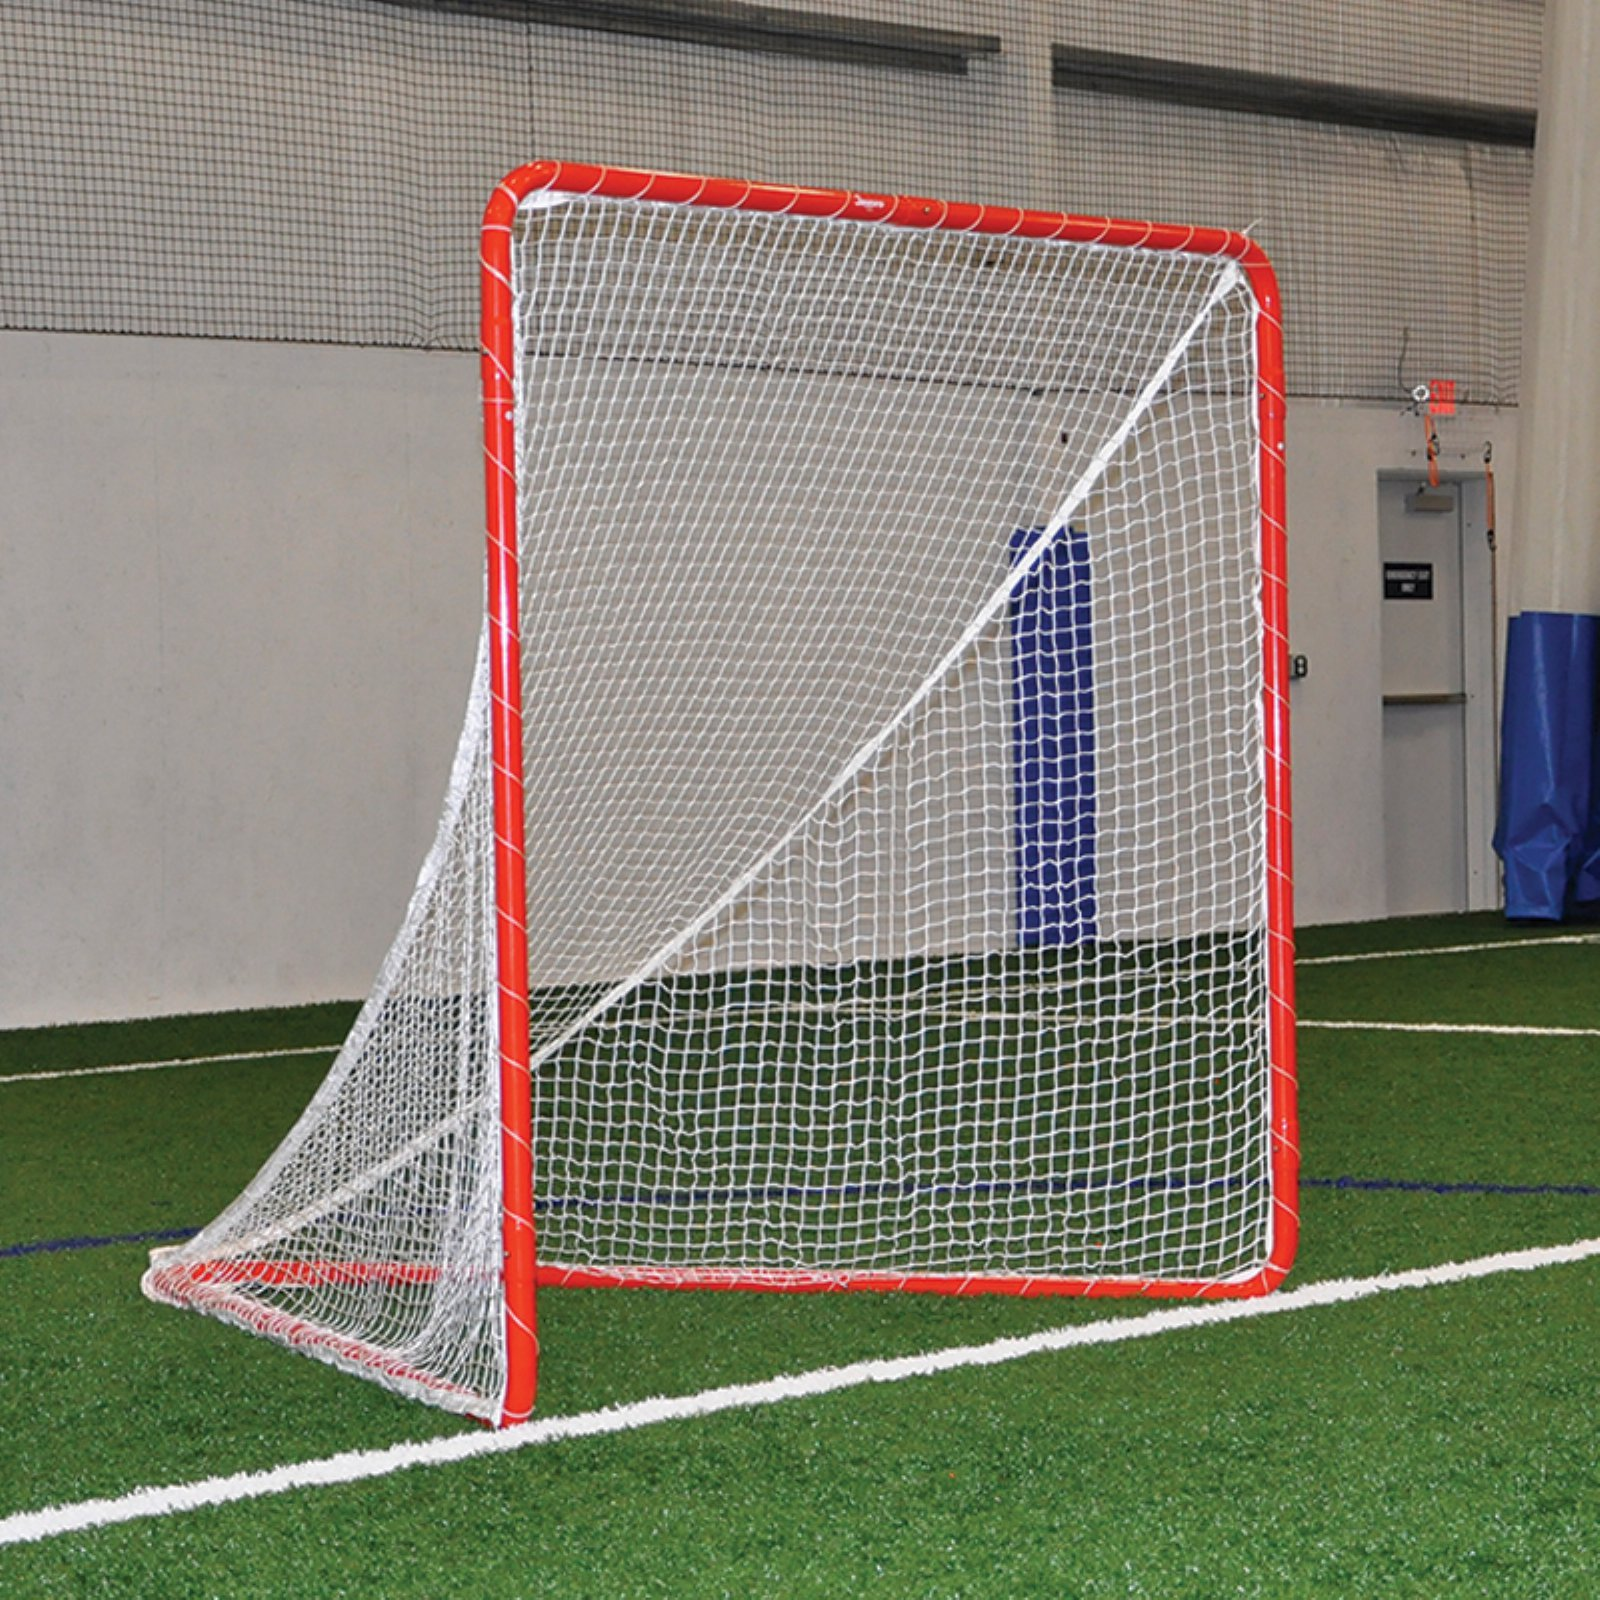 Click here to buy Jaypro Practice Lacrosse Goal.